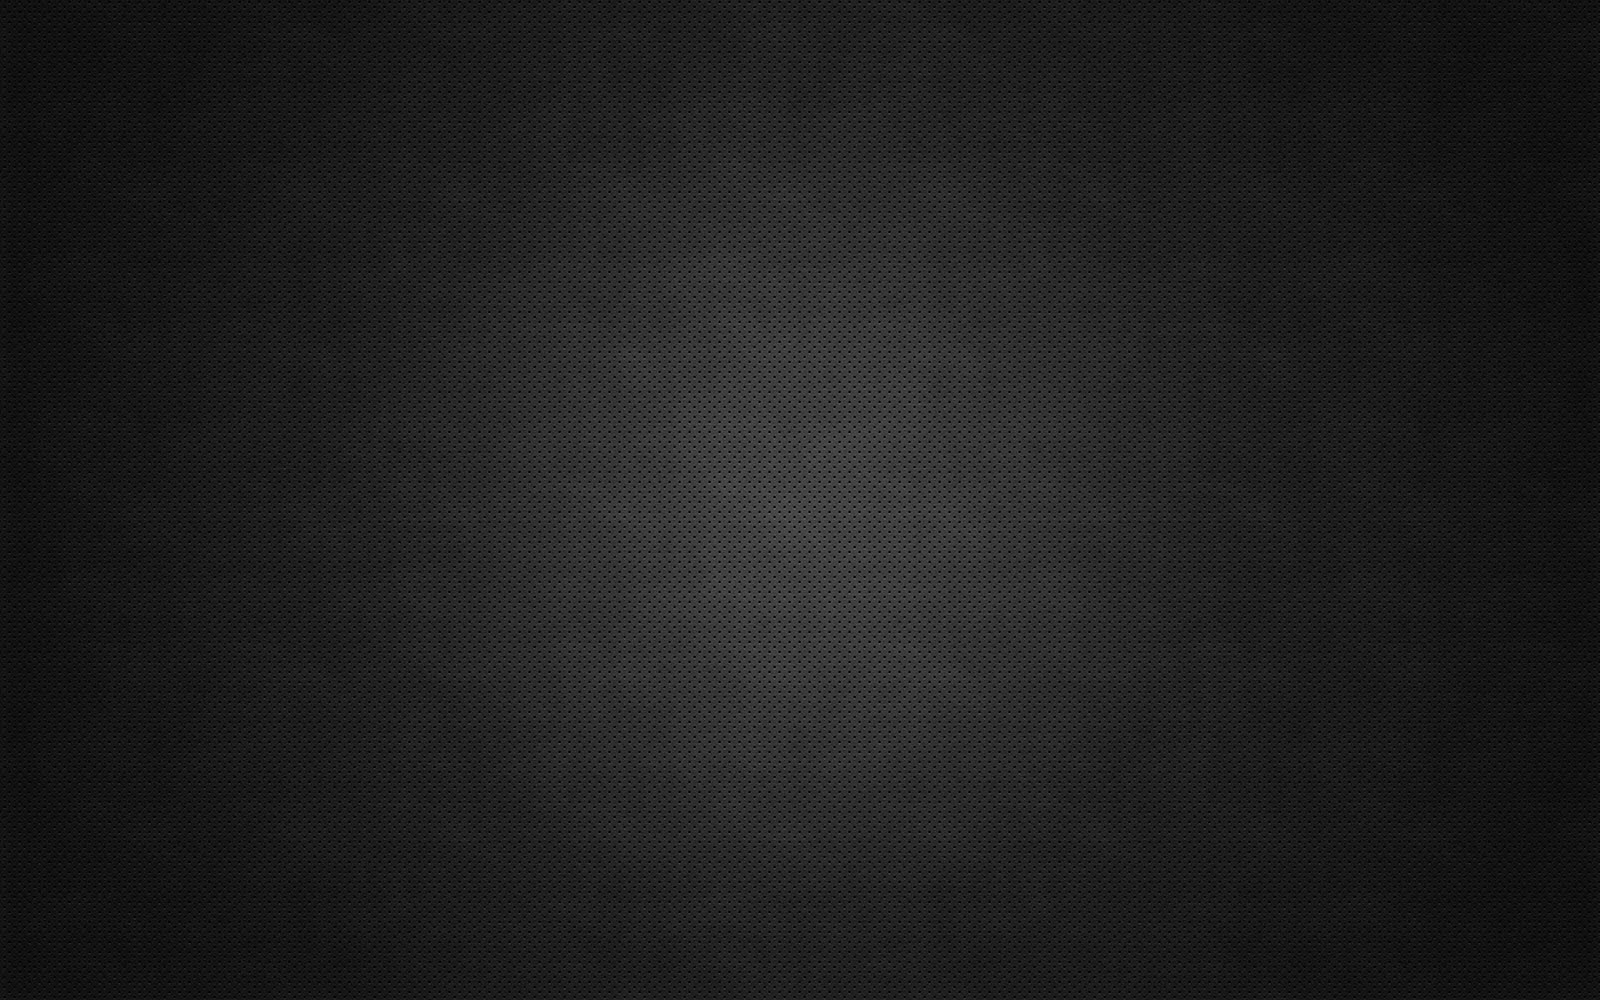 black texture wallpapers 3856 - photo #16